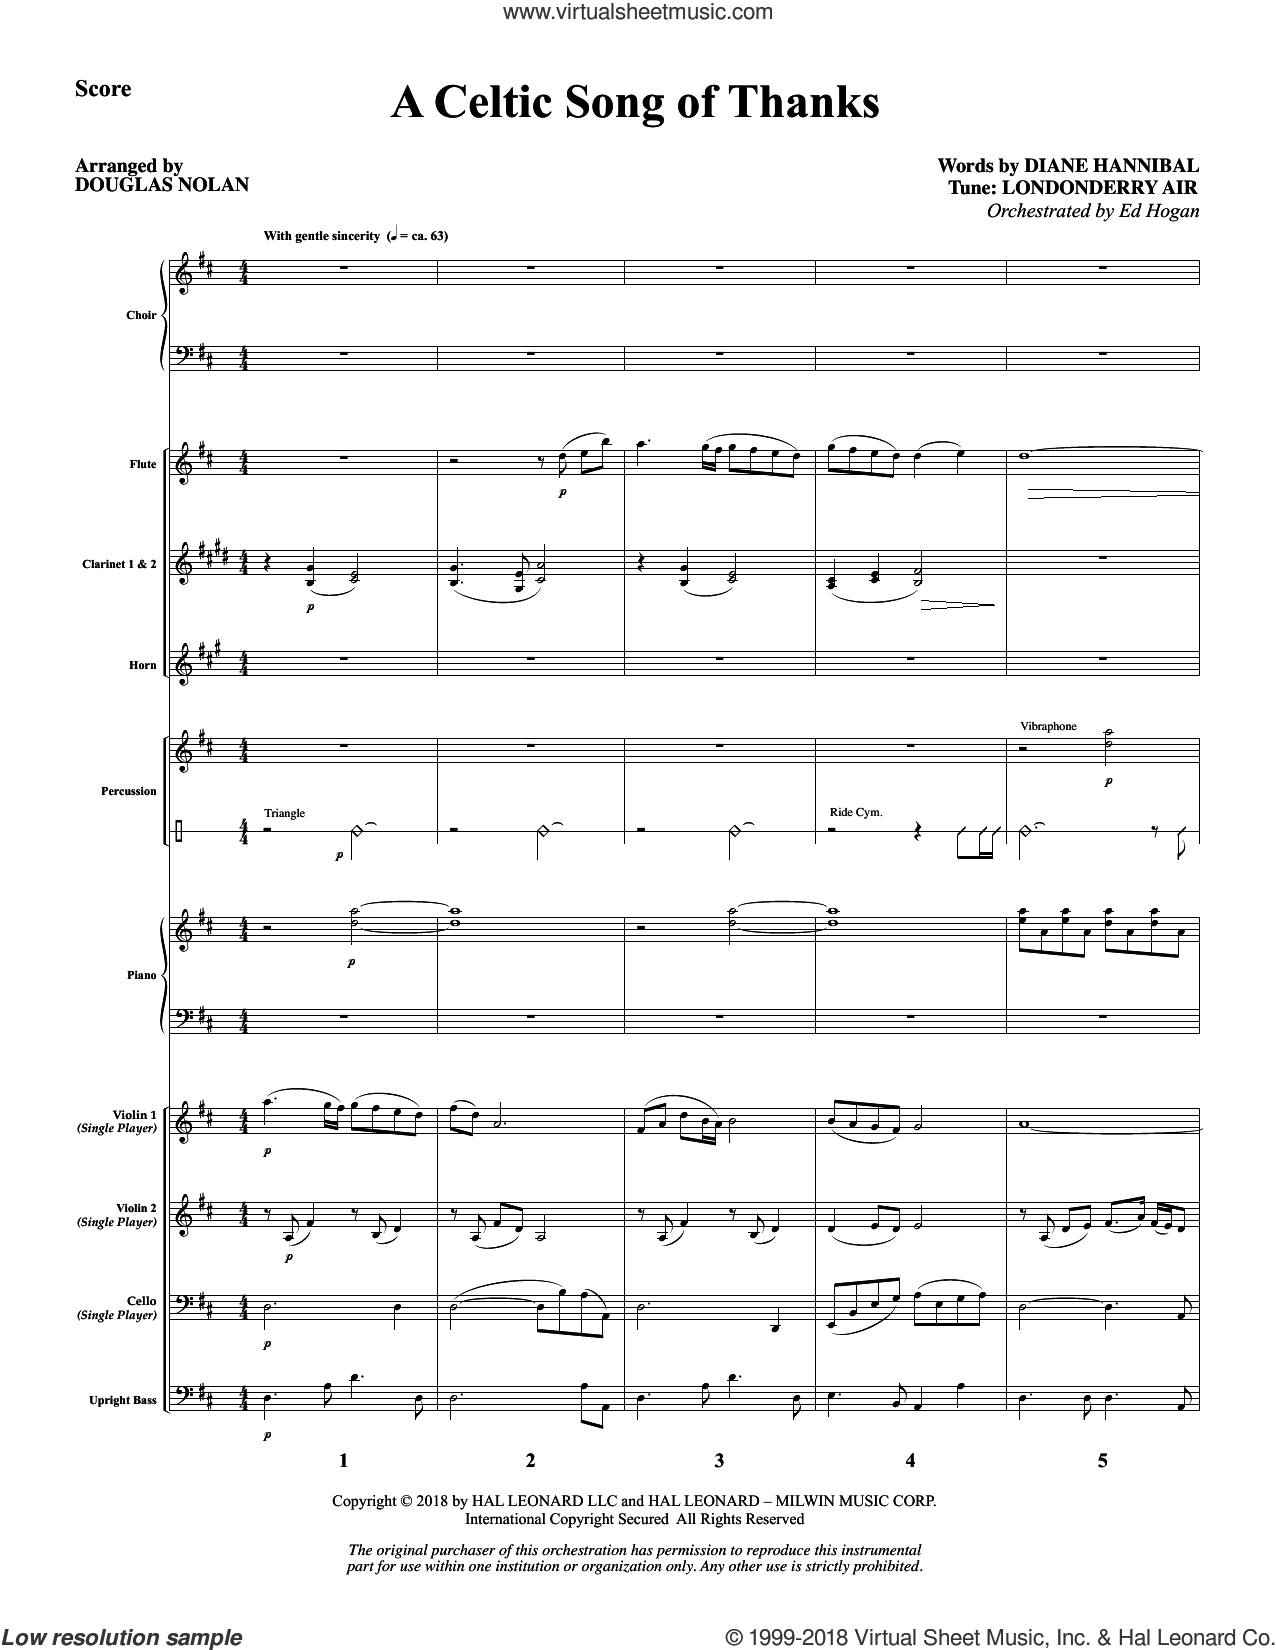 A Celtic Song of Thanks (COMPLETE) sheet music for orchestra/band by Douglas Nolan, Diane Hannibal and Londonderry Air, intermediate skill level